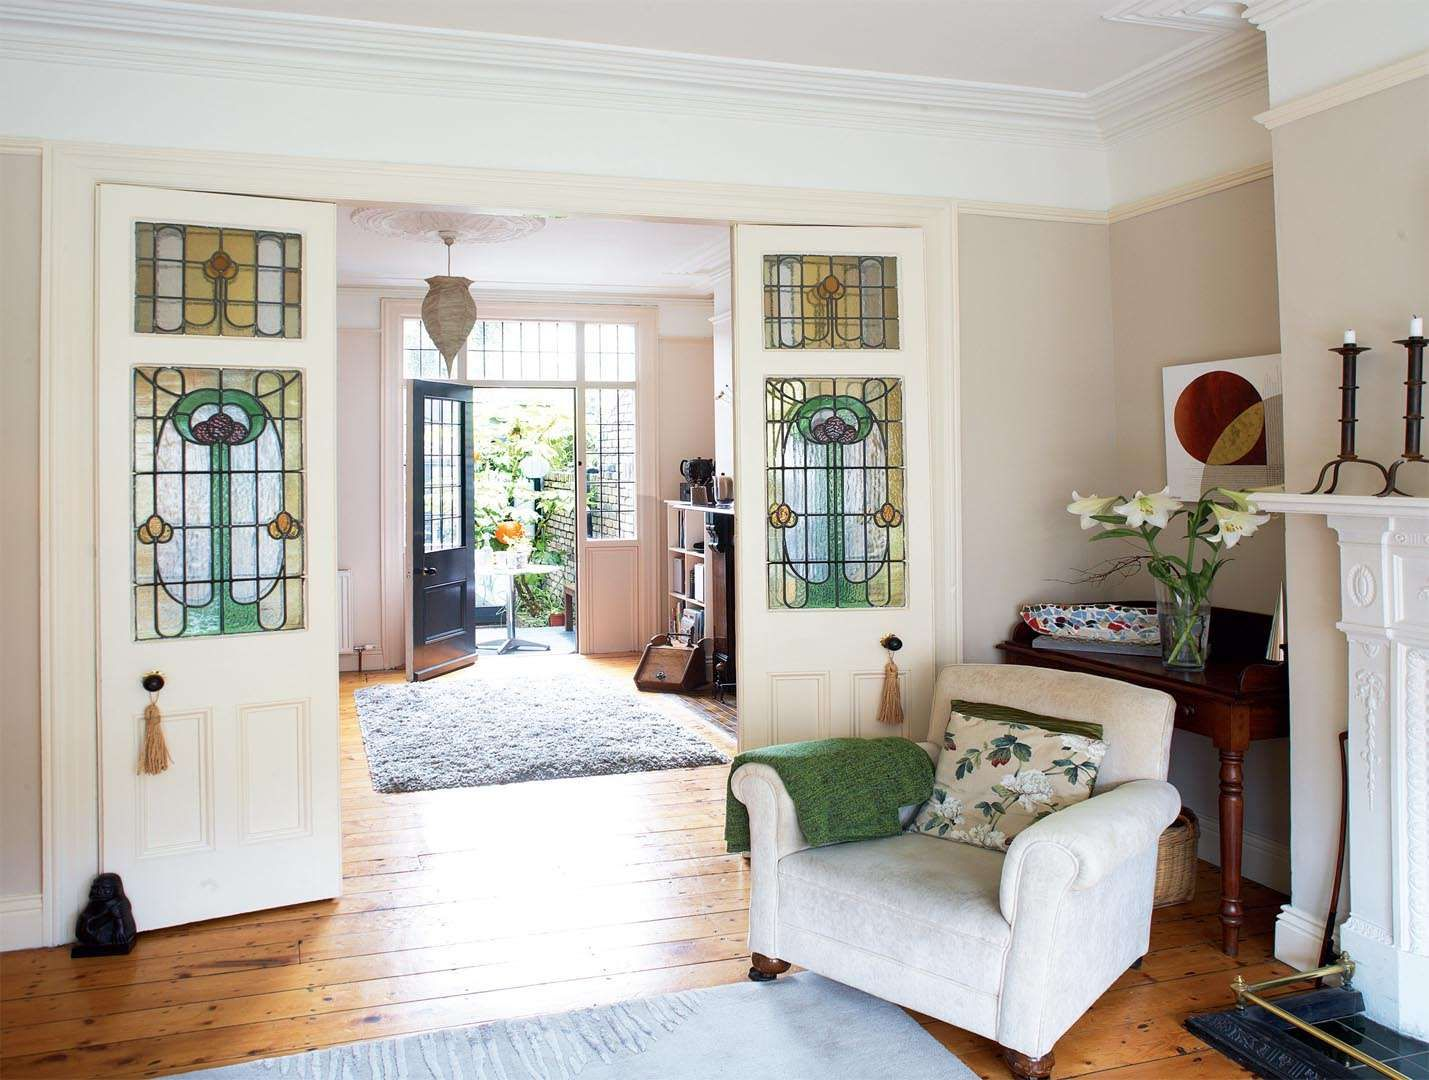 Renovating a victorian townhouse real homes dream for Victorian houses interior design ideas